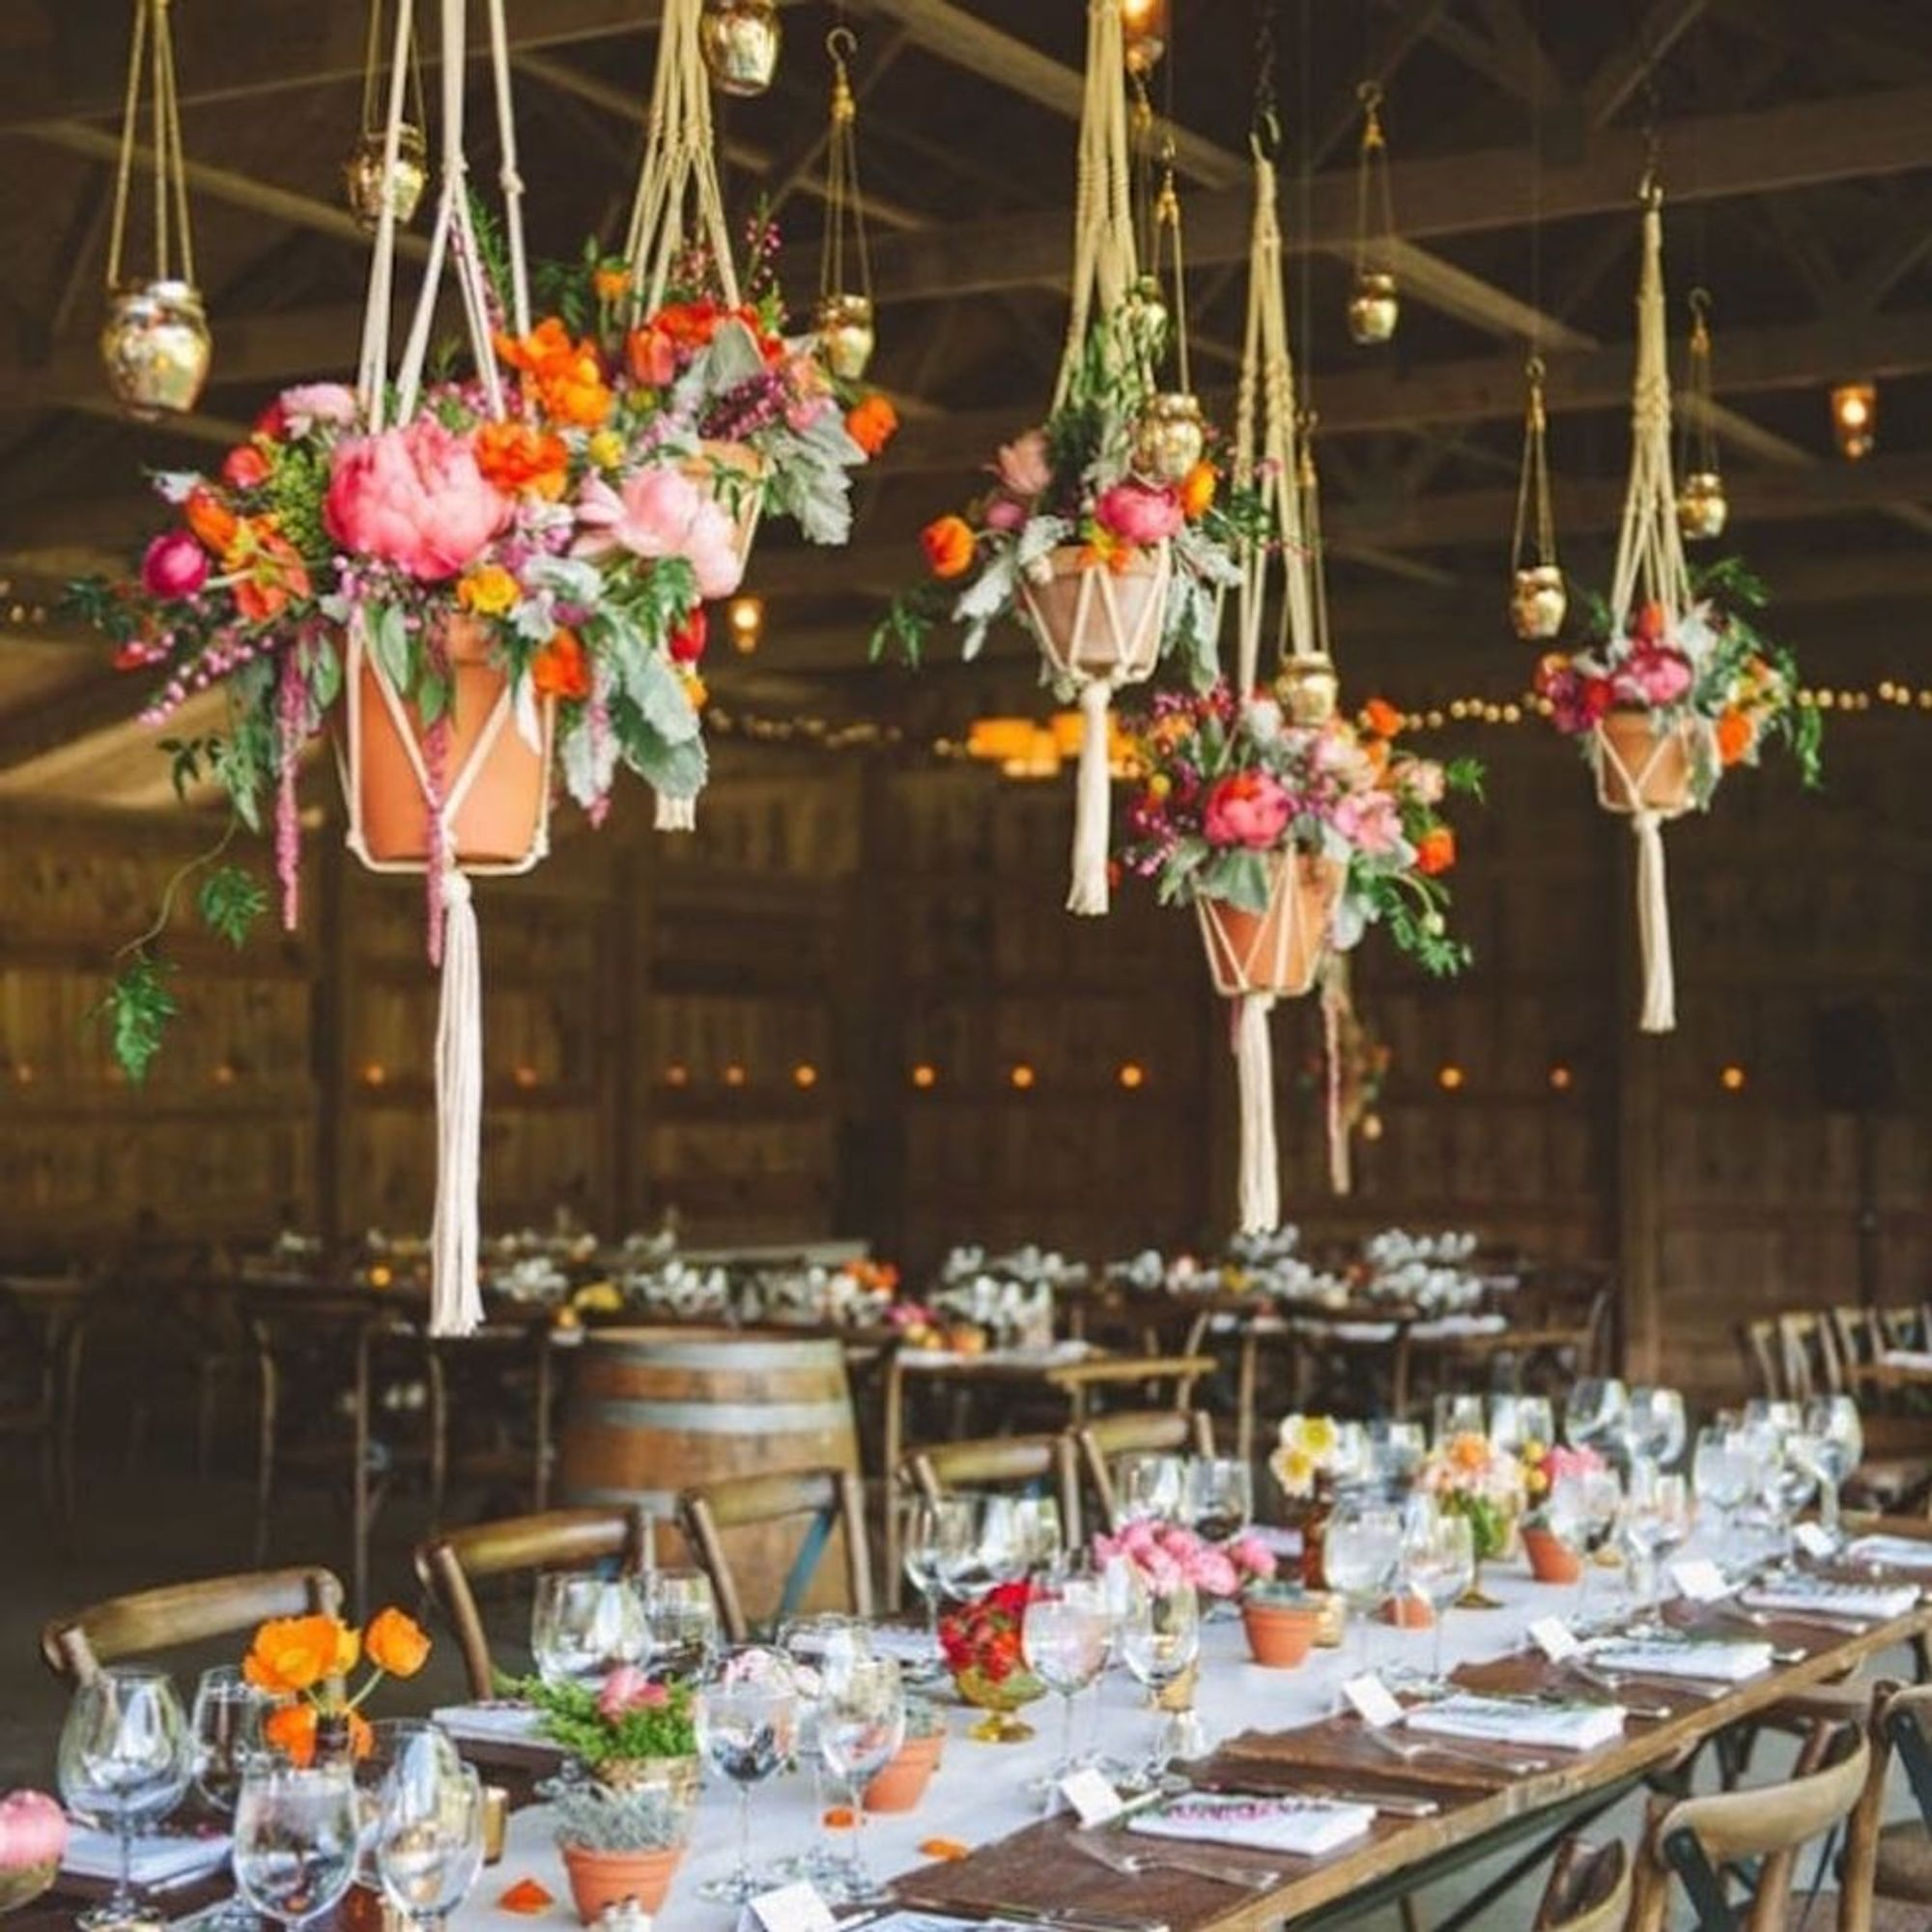 9 Hanging Wedding Centerpieces That Will Take Your Decor to a Whole Other  Level - Brit + Co